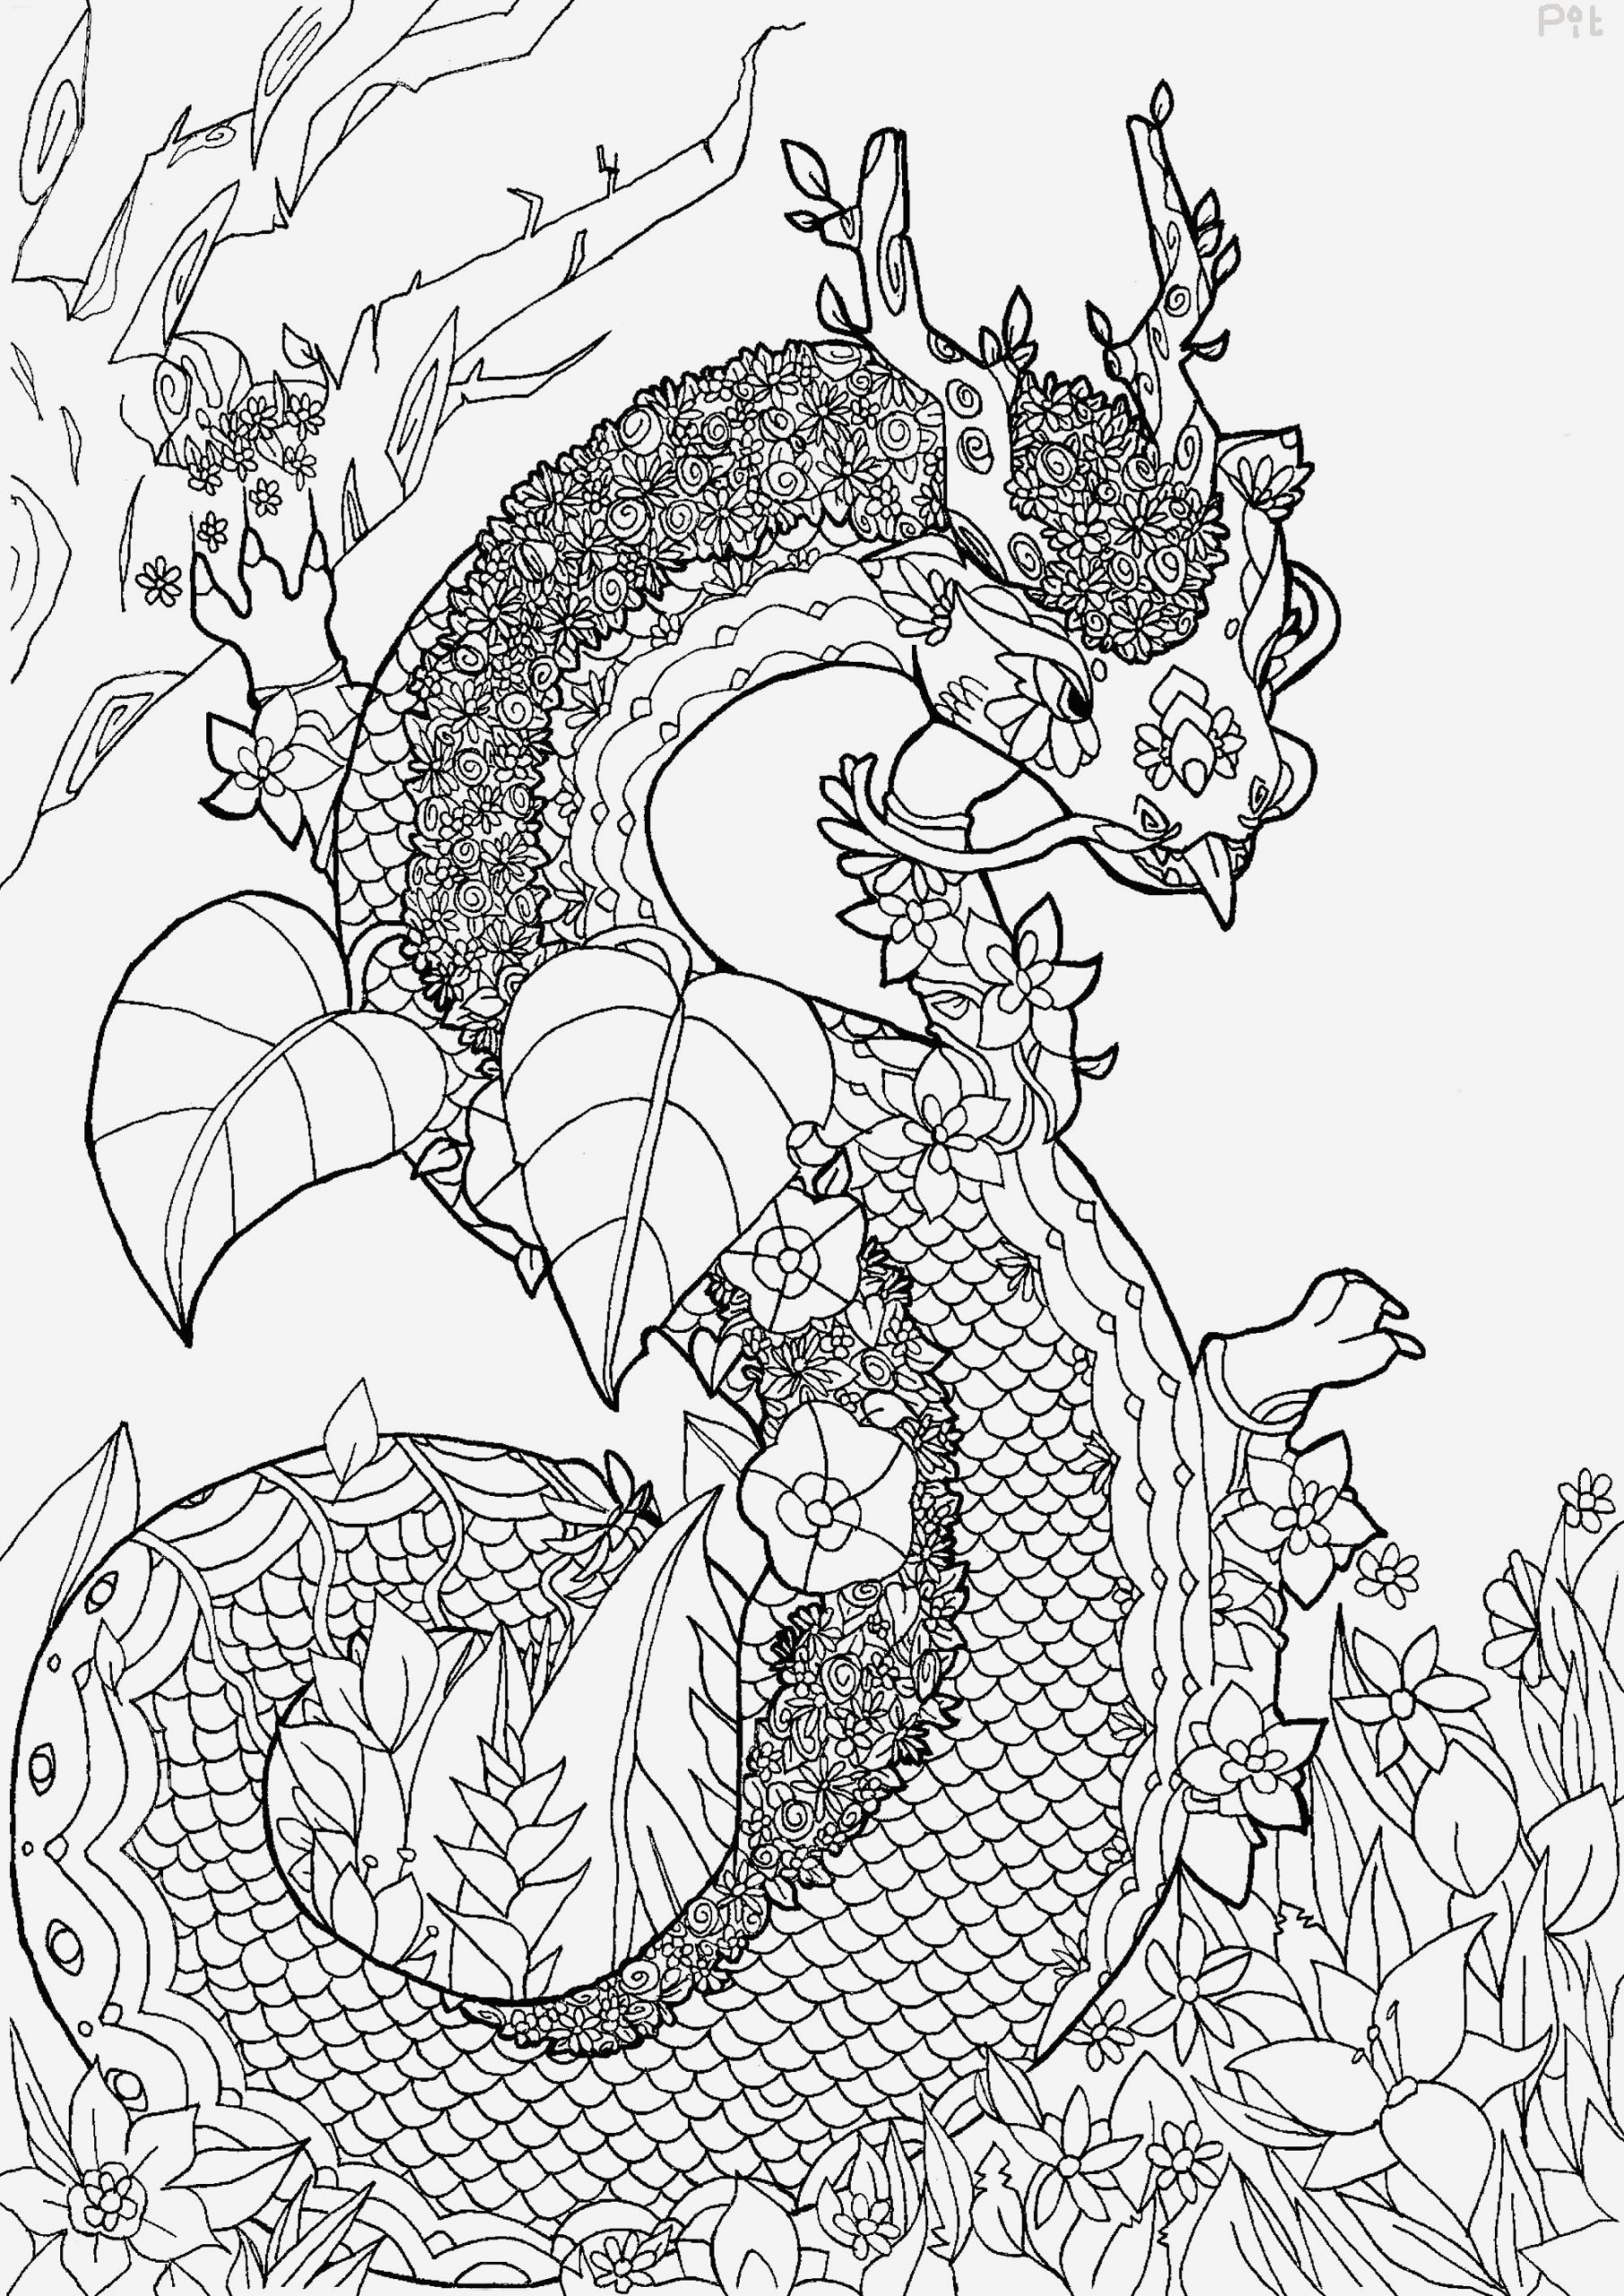 Coloriage Dragon Chinois Best Of Dragon Fleuri Valentin Coloriages Difficiles Pour Adultes Of Coloriage Dragon Chinois